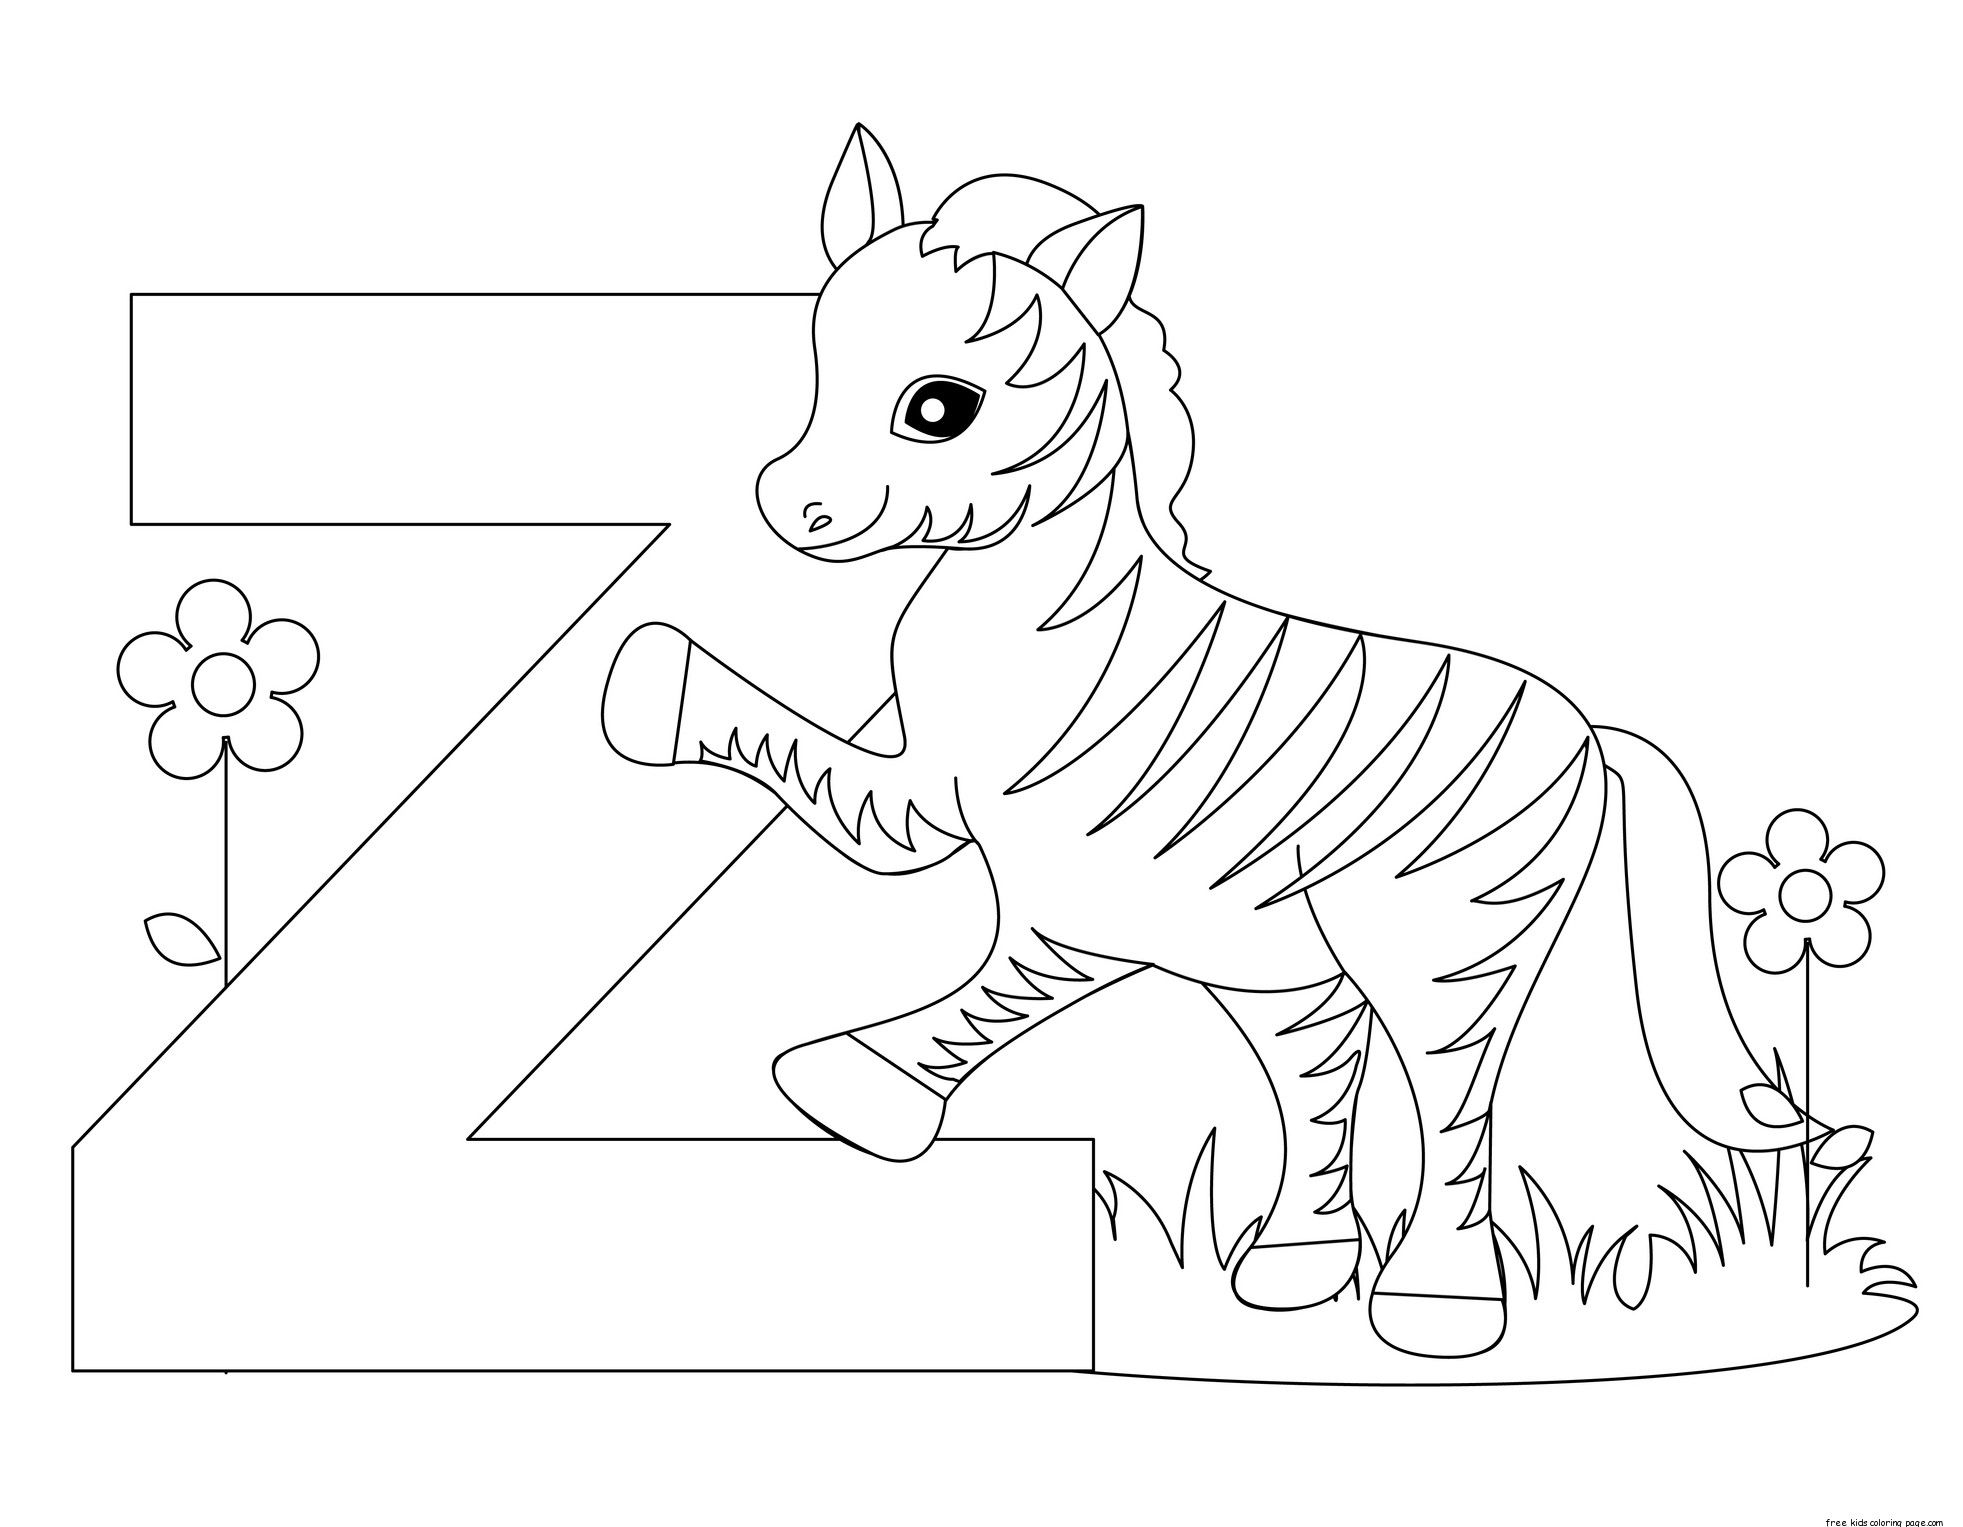 Preschool Animal Worksheets